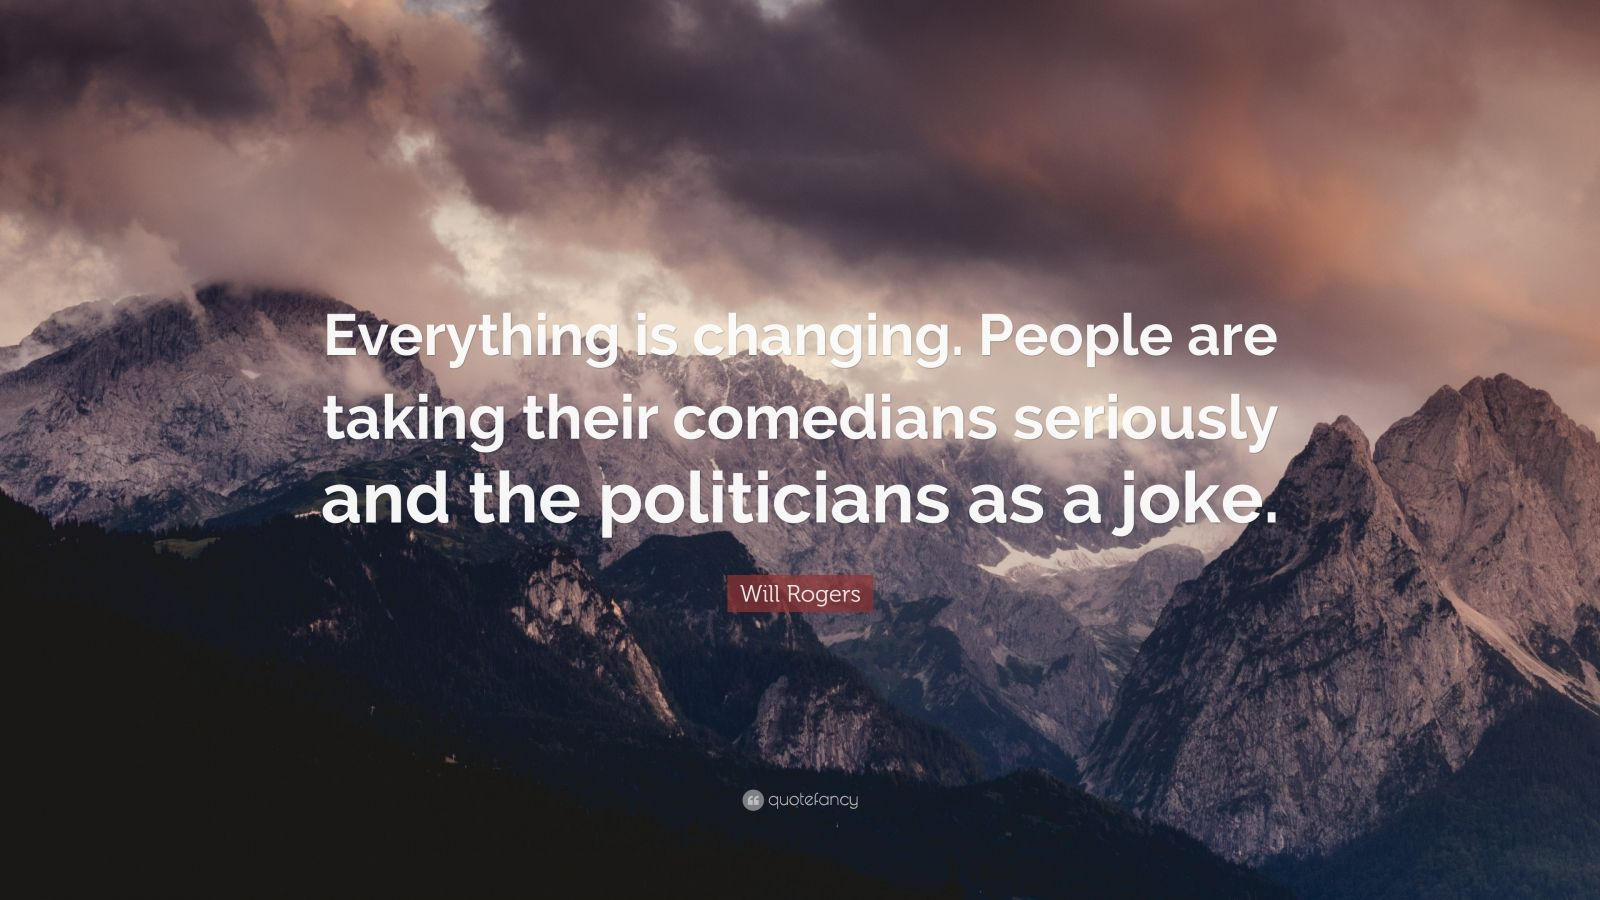 """Will Rogers Quote: """"Everything is changing. People are taking their comedians seriously and the politicians as a joke."""""""